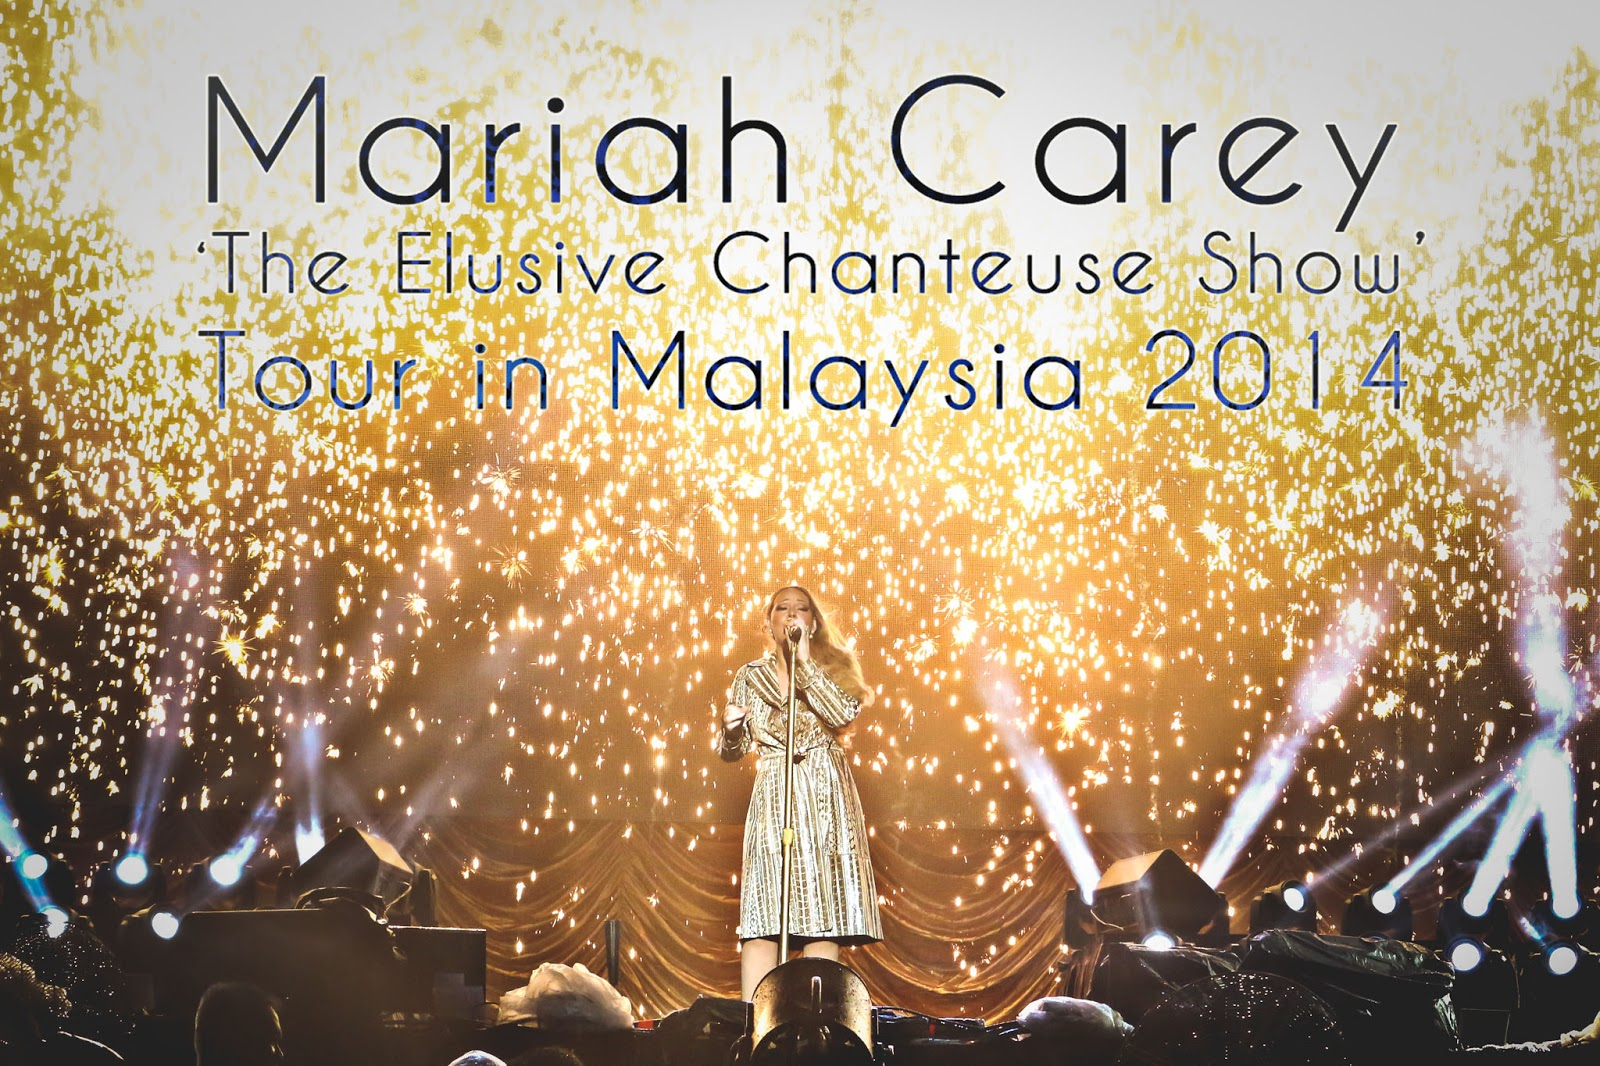 [Photo] Mariah Carey 'The Elusive Chanteuse Show' Tour in Malaysia 2014 #MariahCarey [PART 2]